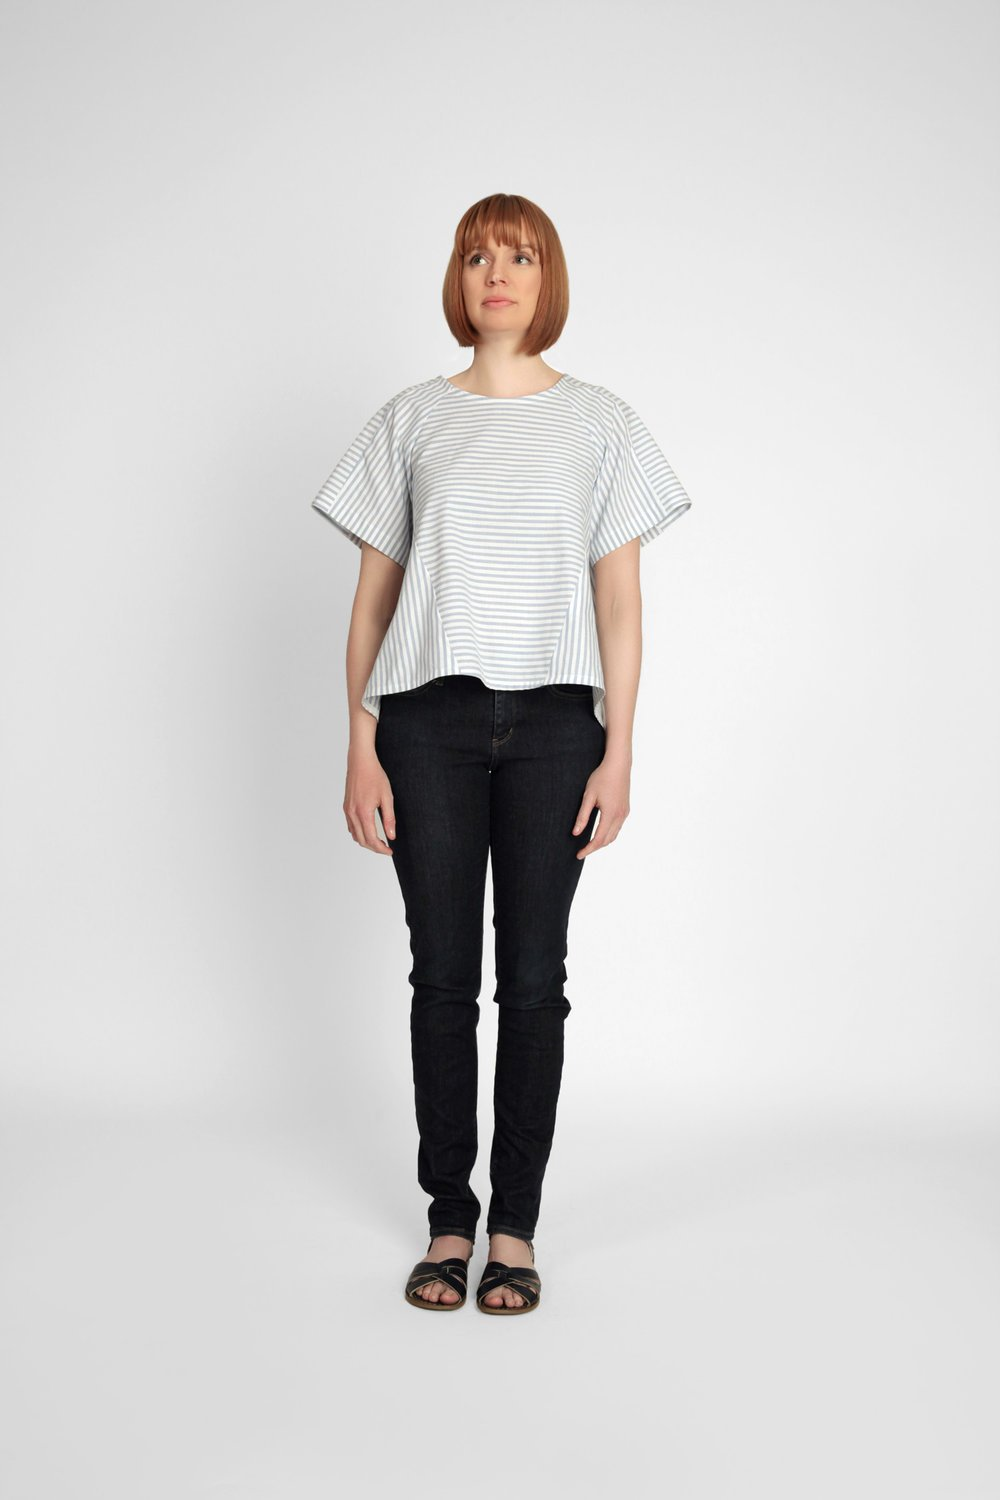 Collins top - From $19